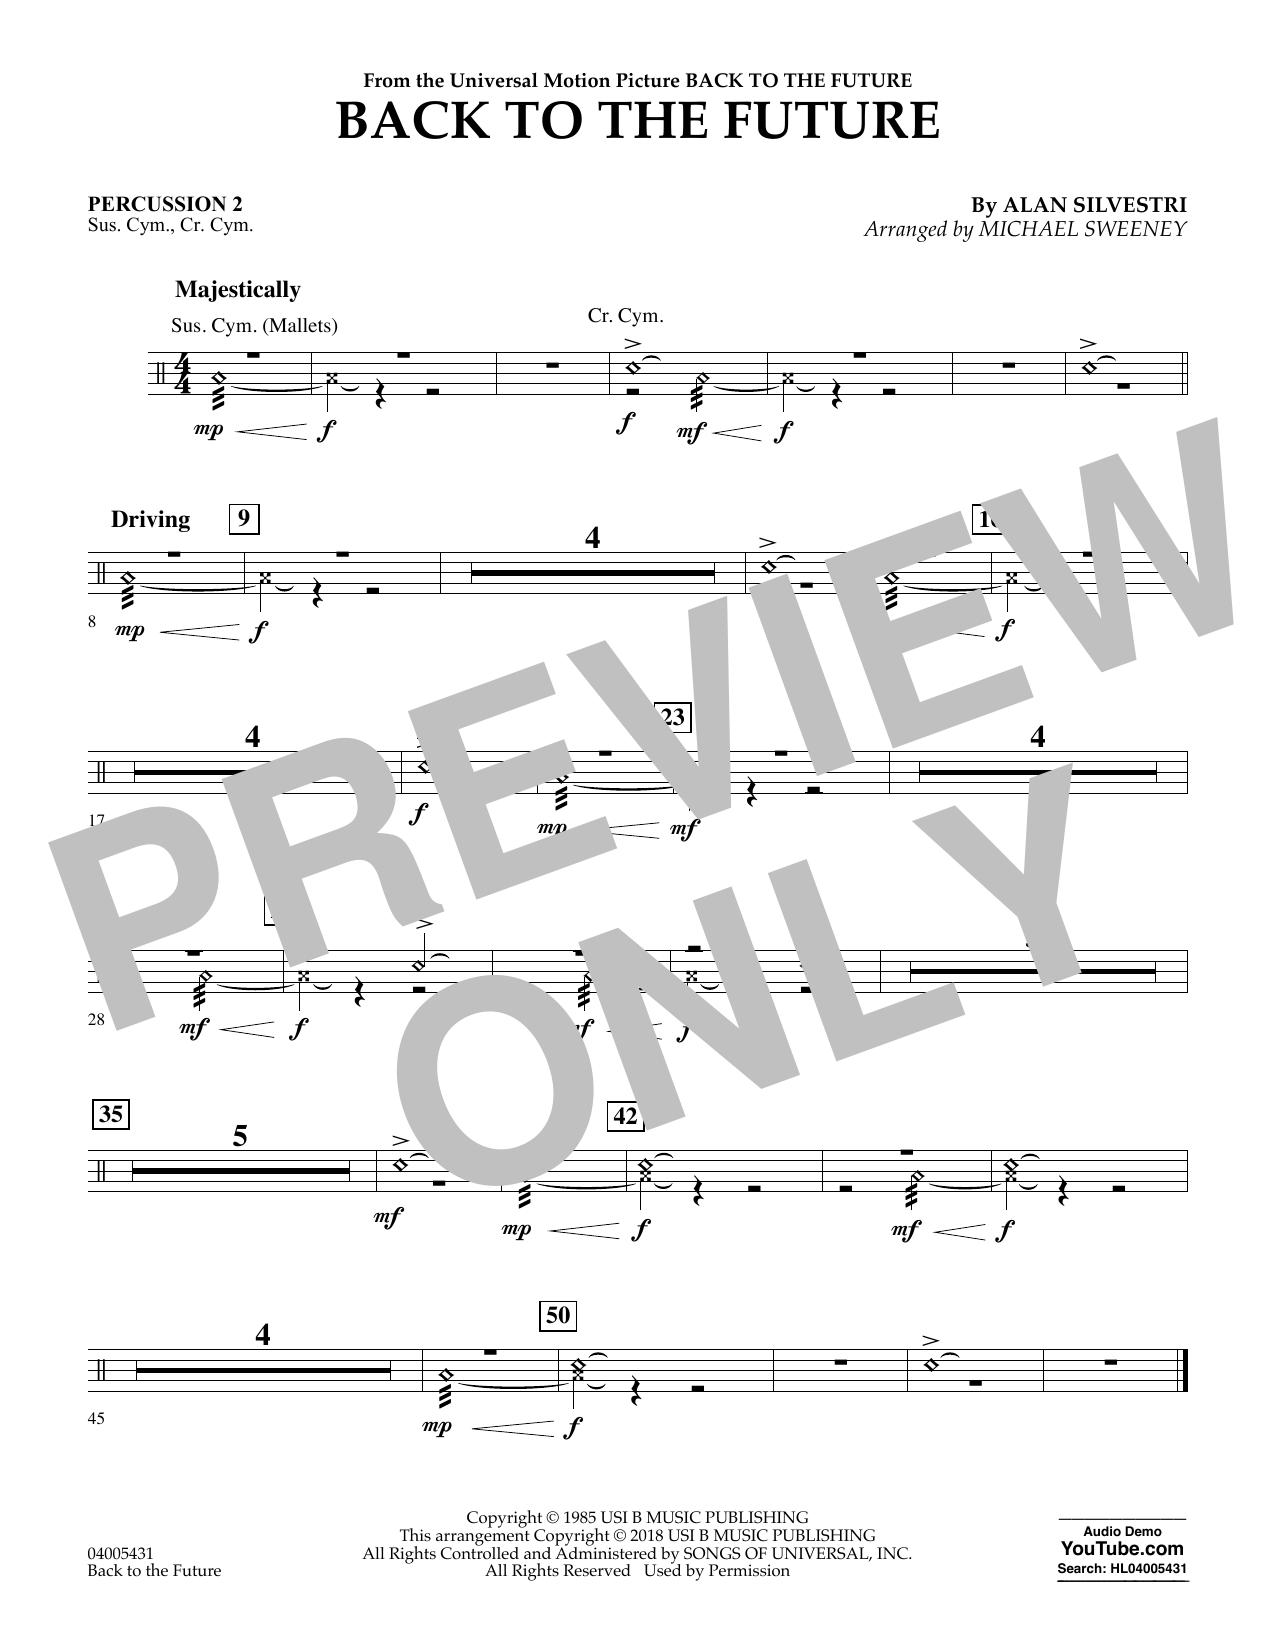 Back to the Future - Percussion 2 (Concert Band)